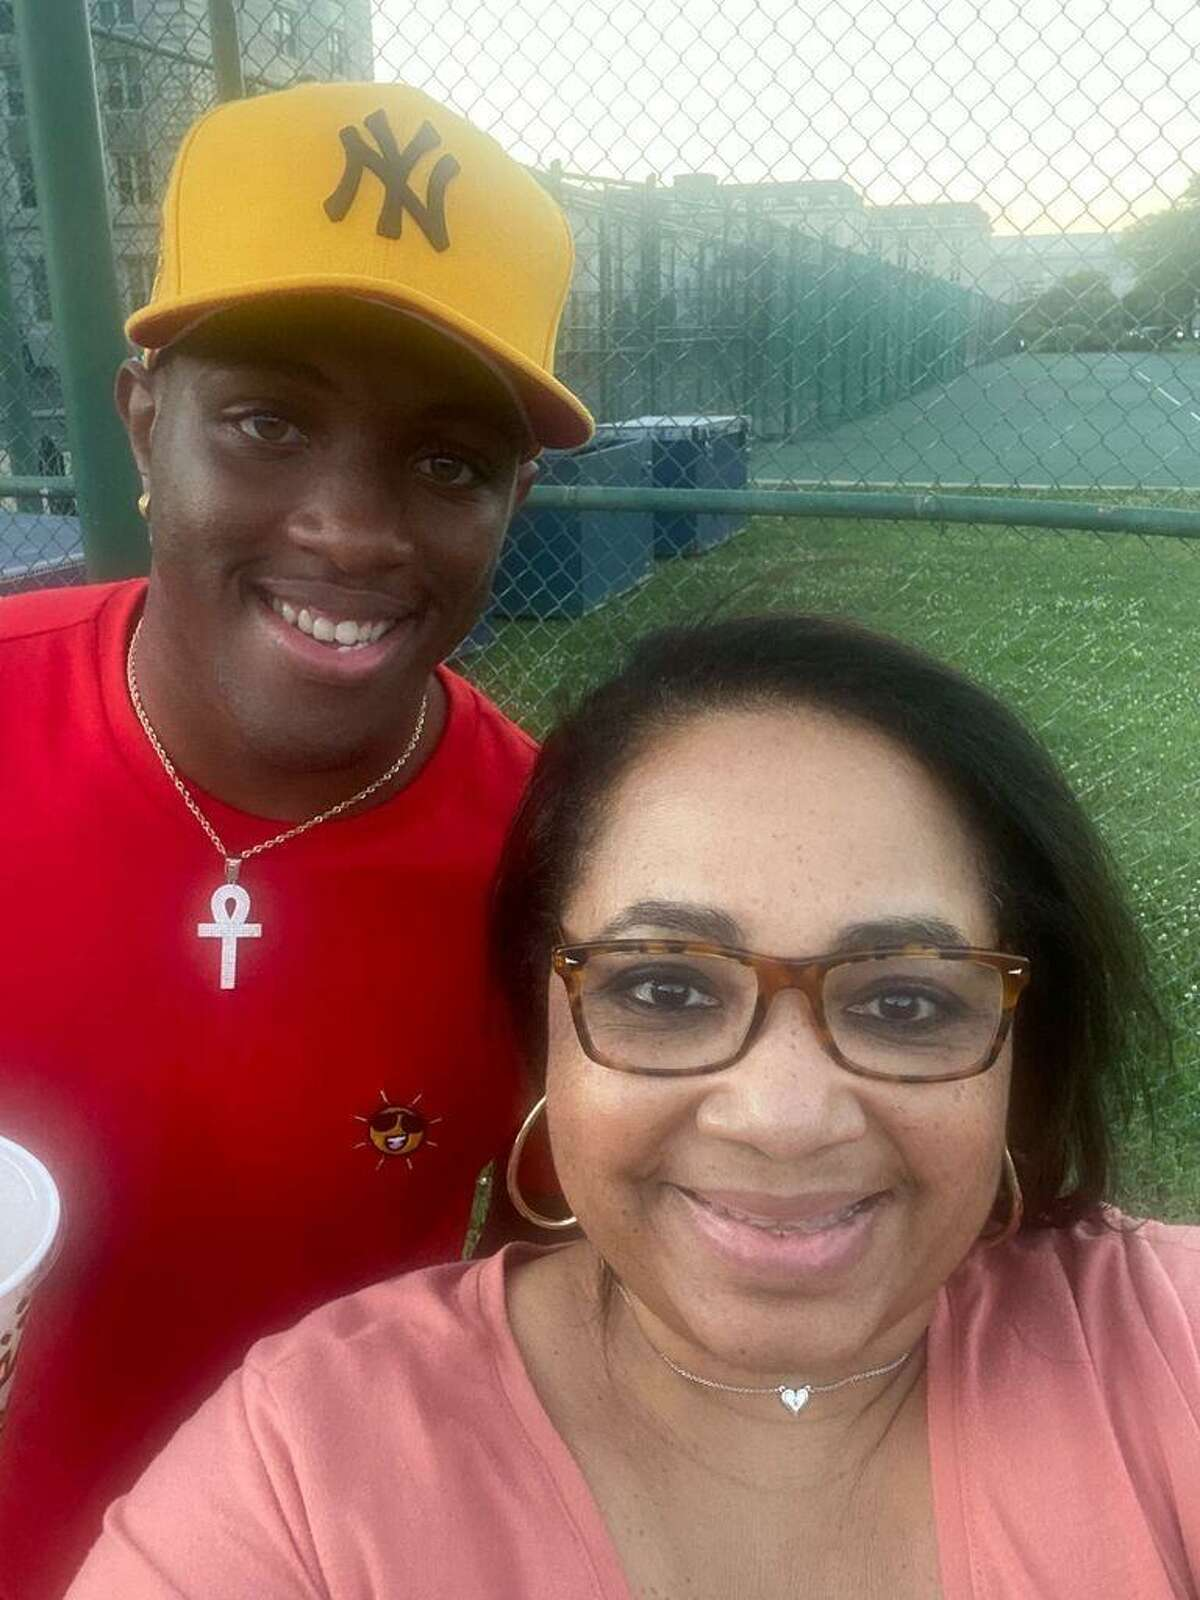 Police in Maryland have arrested a 29-year-old man and charged him with murder in the death of Michelle Cummings, a Houston woman who was fatally shot on a restaurant patio after dropping off her son at the U.S. Naval Academy, authorities said Wednesday.